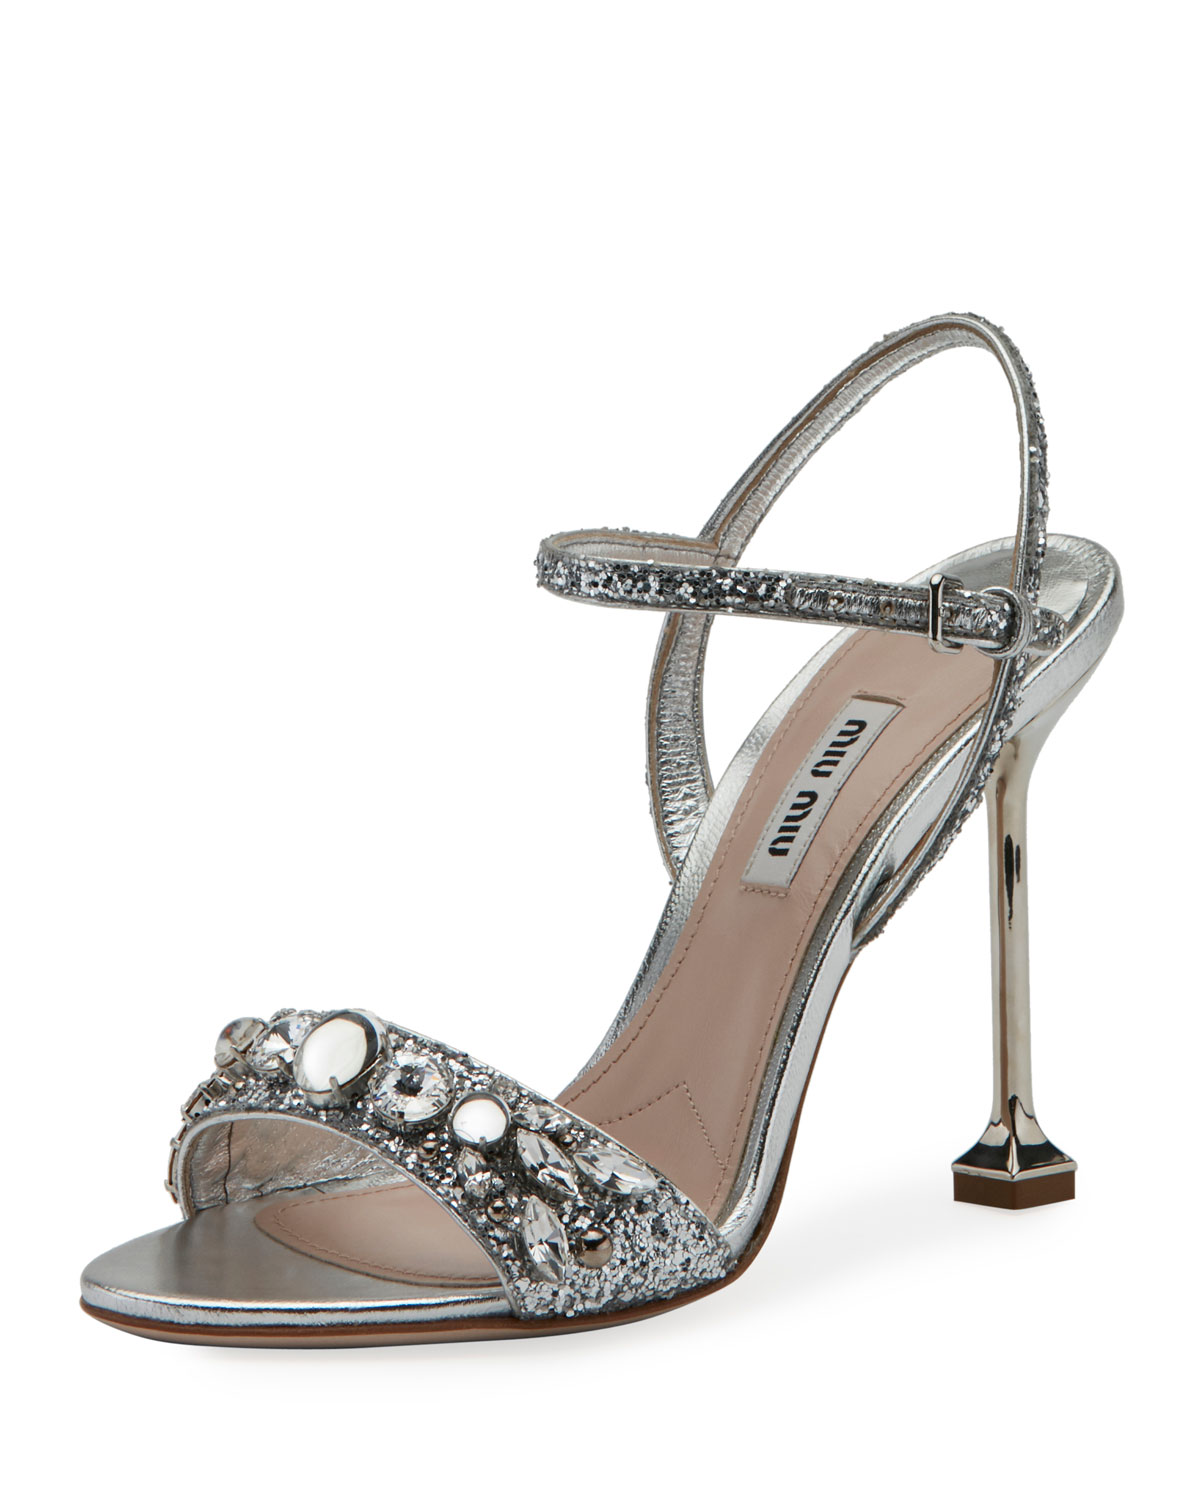 0bccee580c6b Miu Miu Jeweled Glitter 105mm Sandal